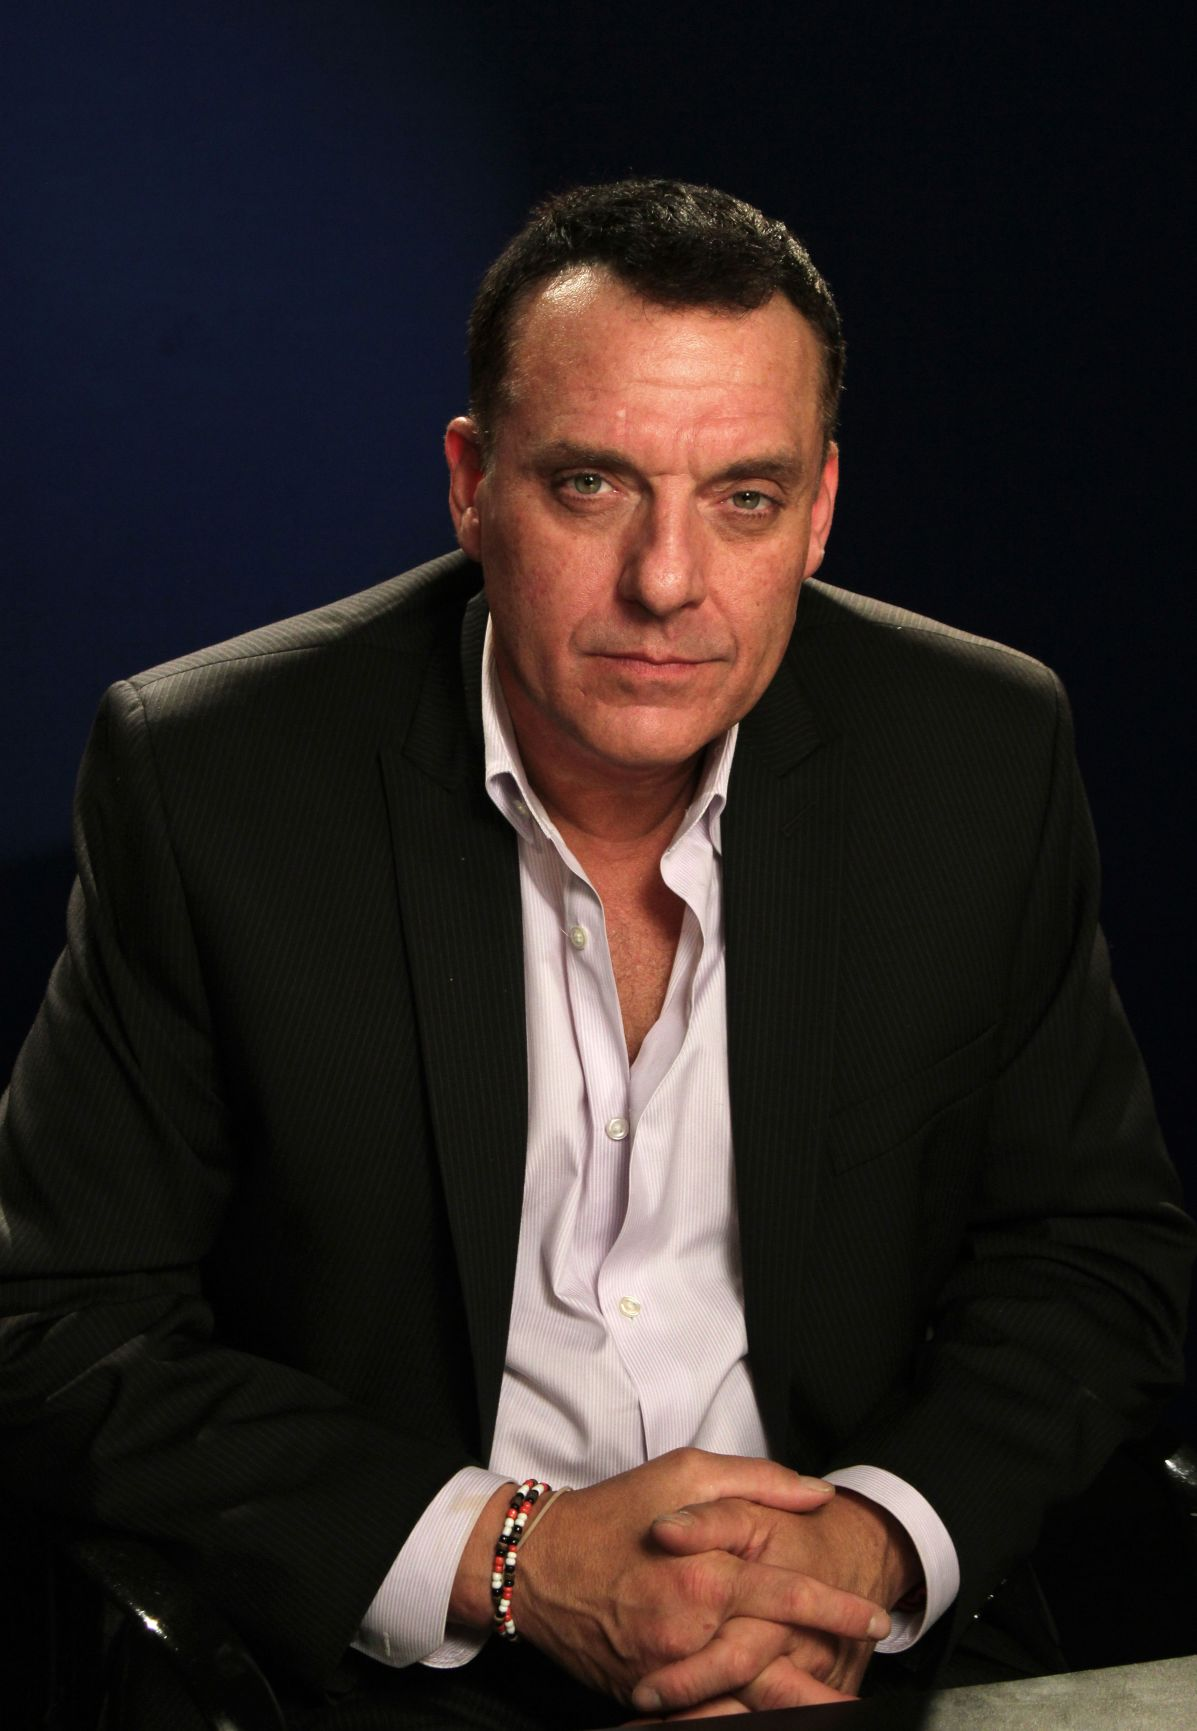 Tom Sizemore honest about long-lasting battle with drugs